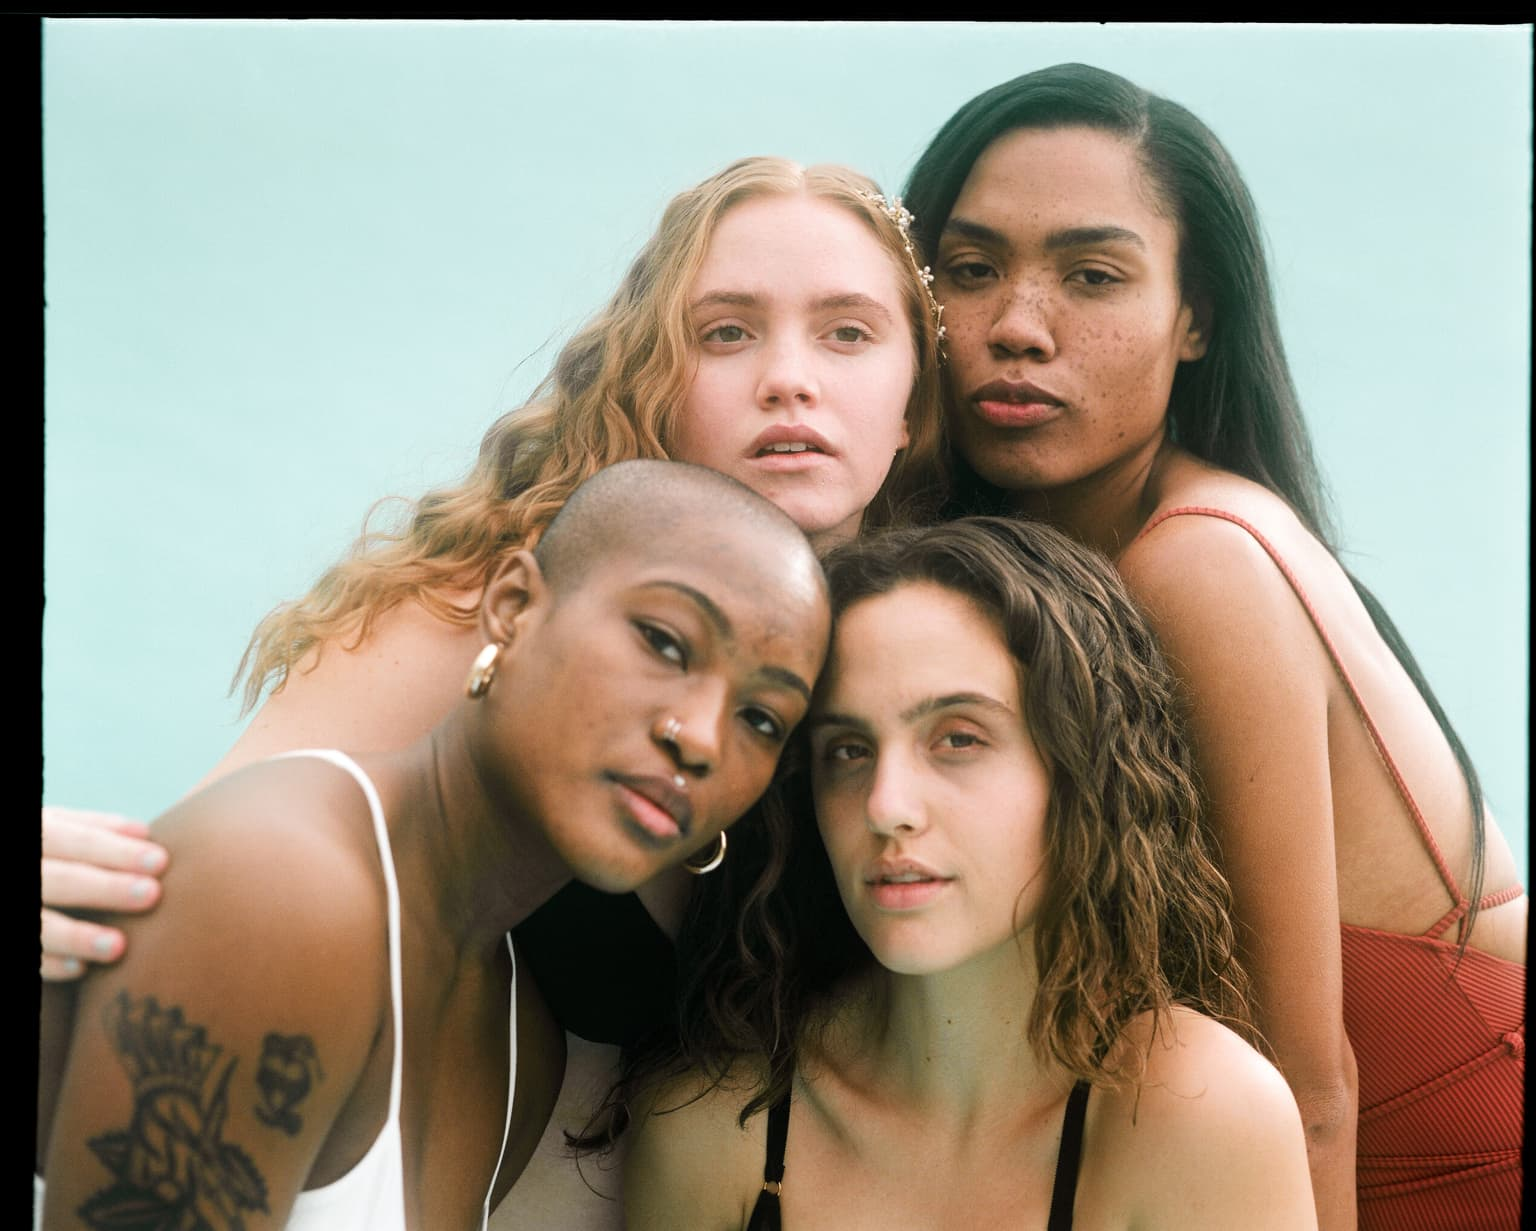 ALL WOMXN PROJECT